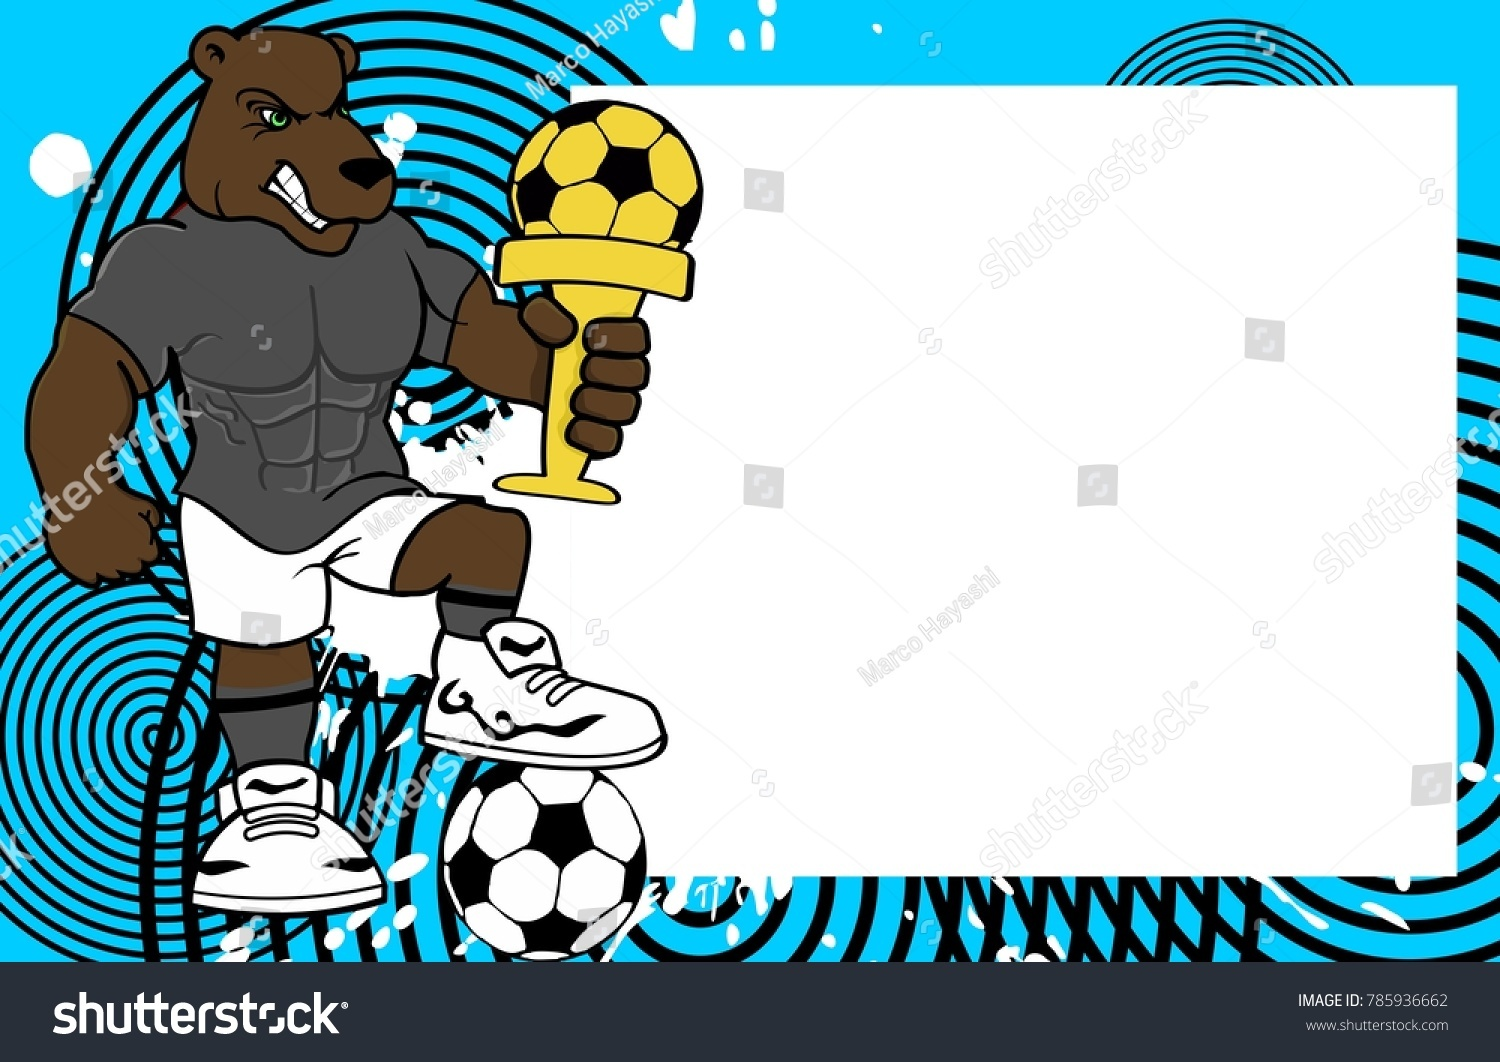 Strong sporty bear futbol soccer player stock vector 785936662 strong sporty bear futbol soccer player cartoon picture frame background in vector format jeuxipadfo Images